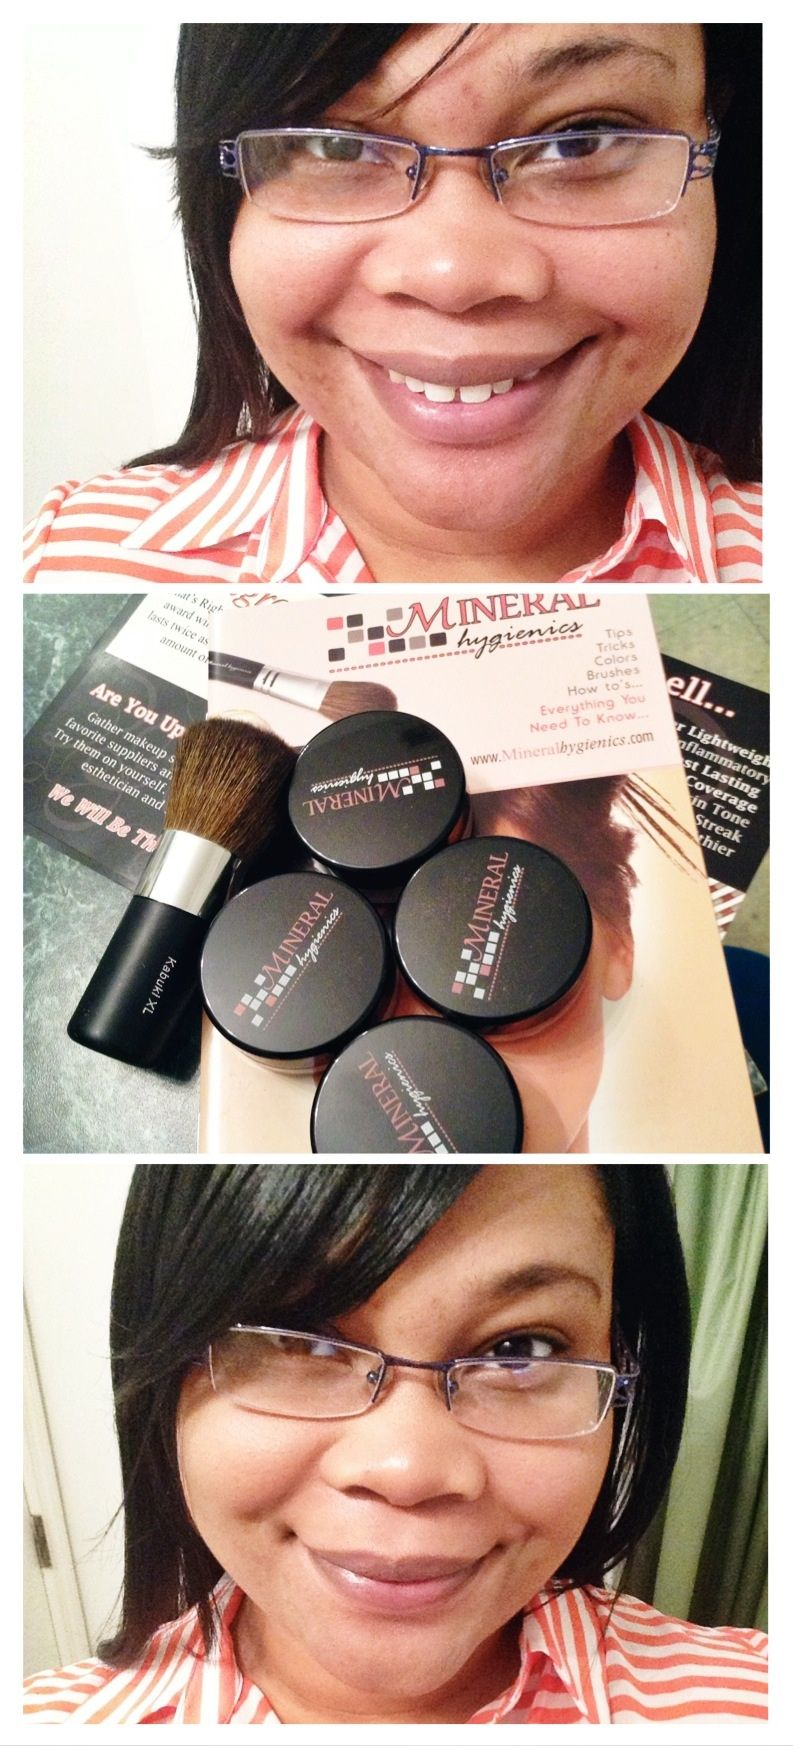 Are you a Mineral makeup fan? Before today I disliked all mineral makeup because I